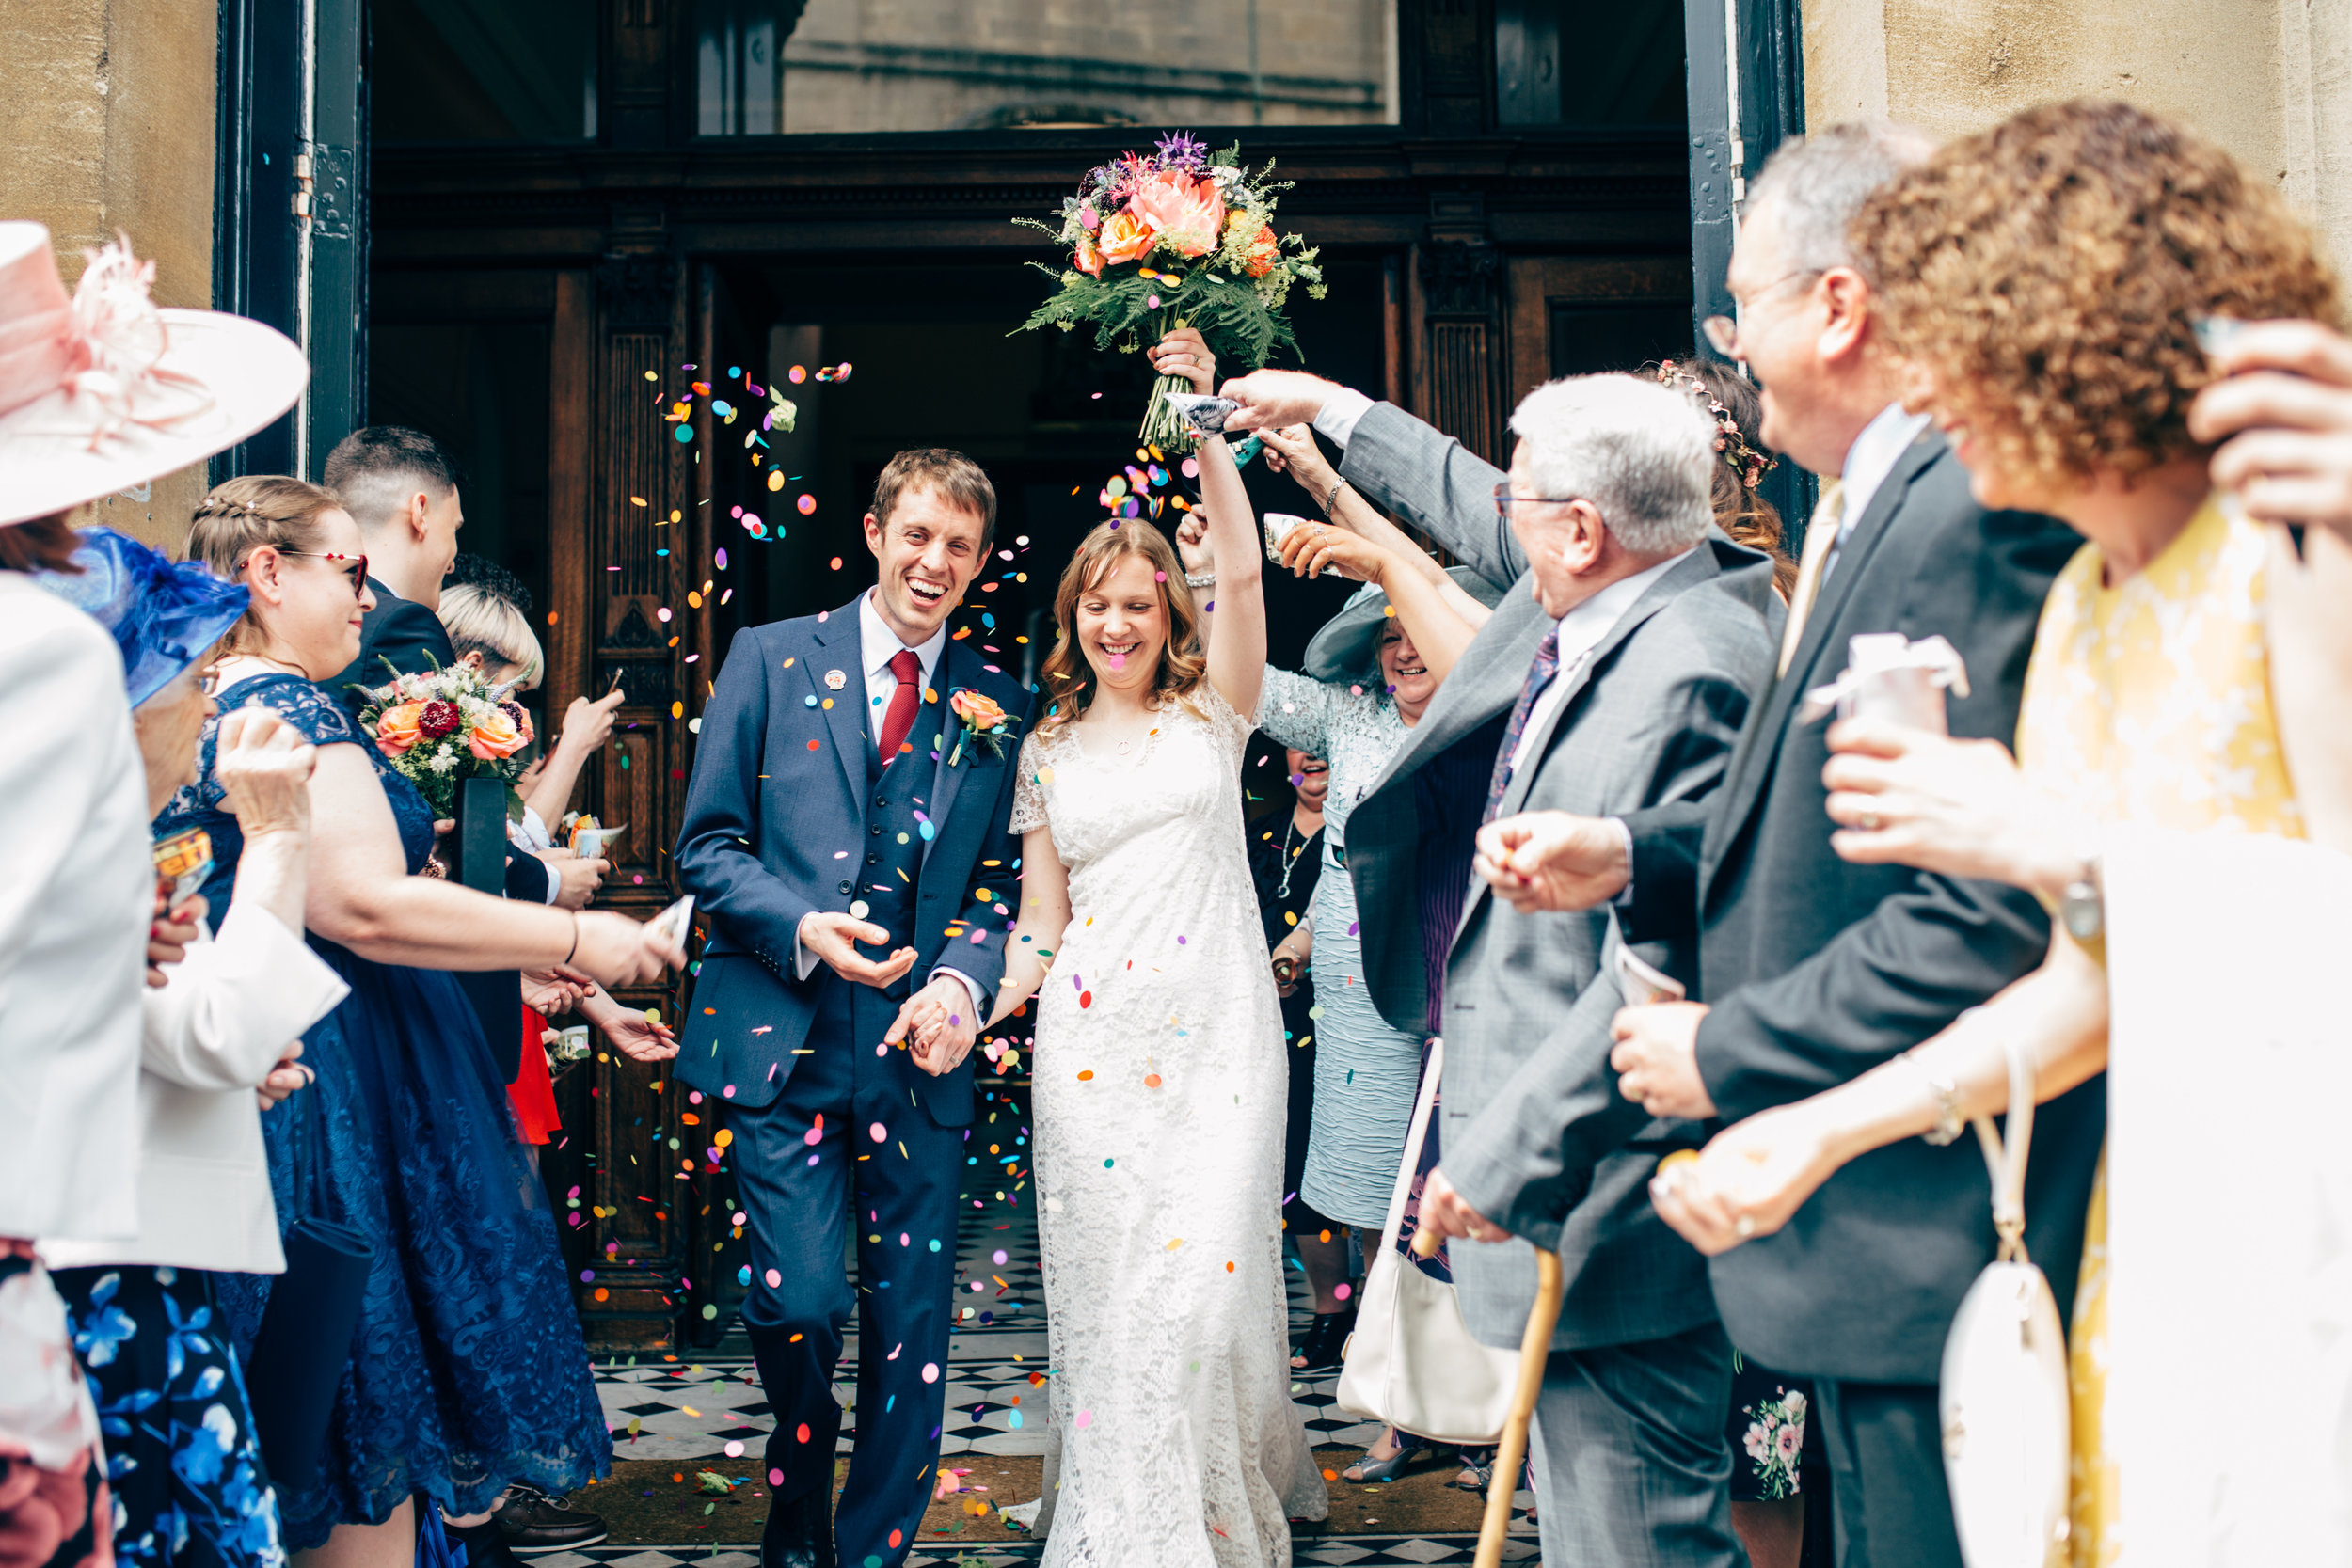 Jen + Chris St George's Bristol Wedding Naomijanephotography high-254.jpg